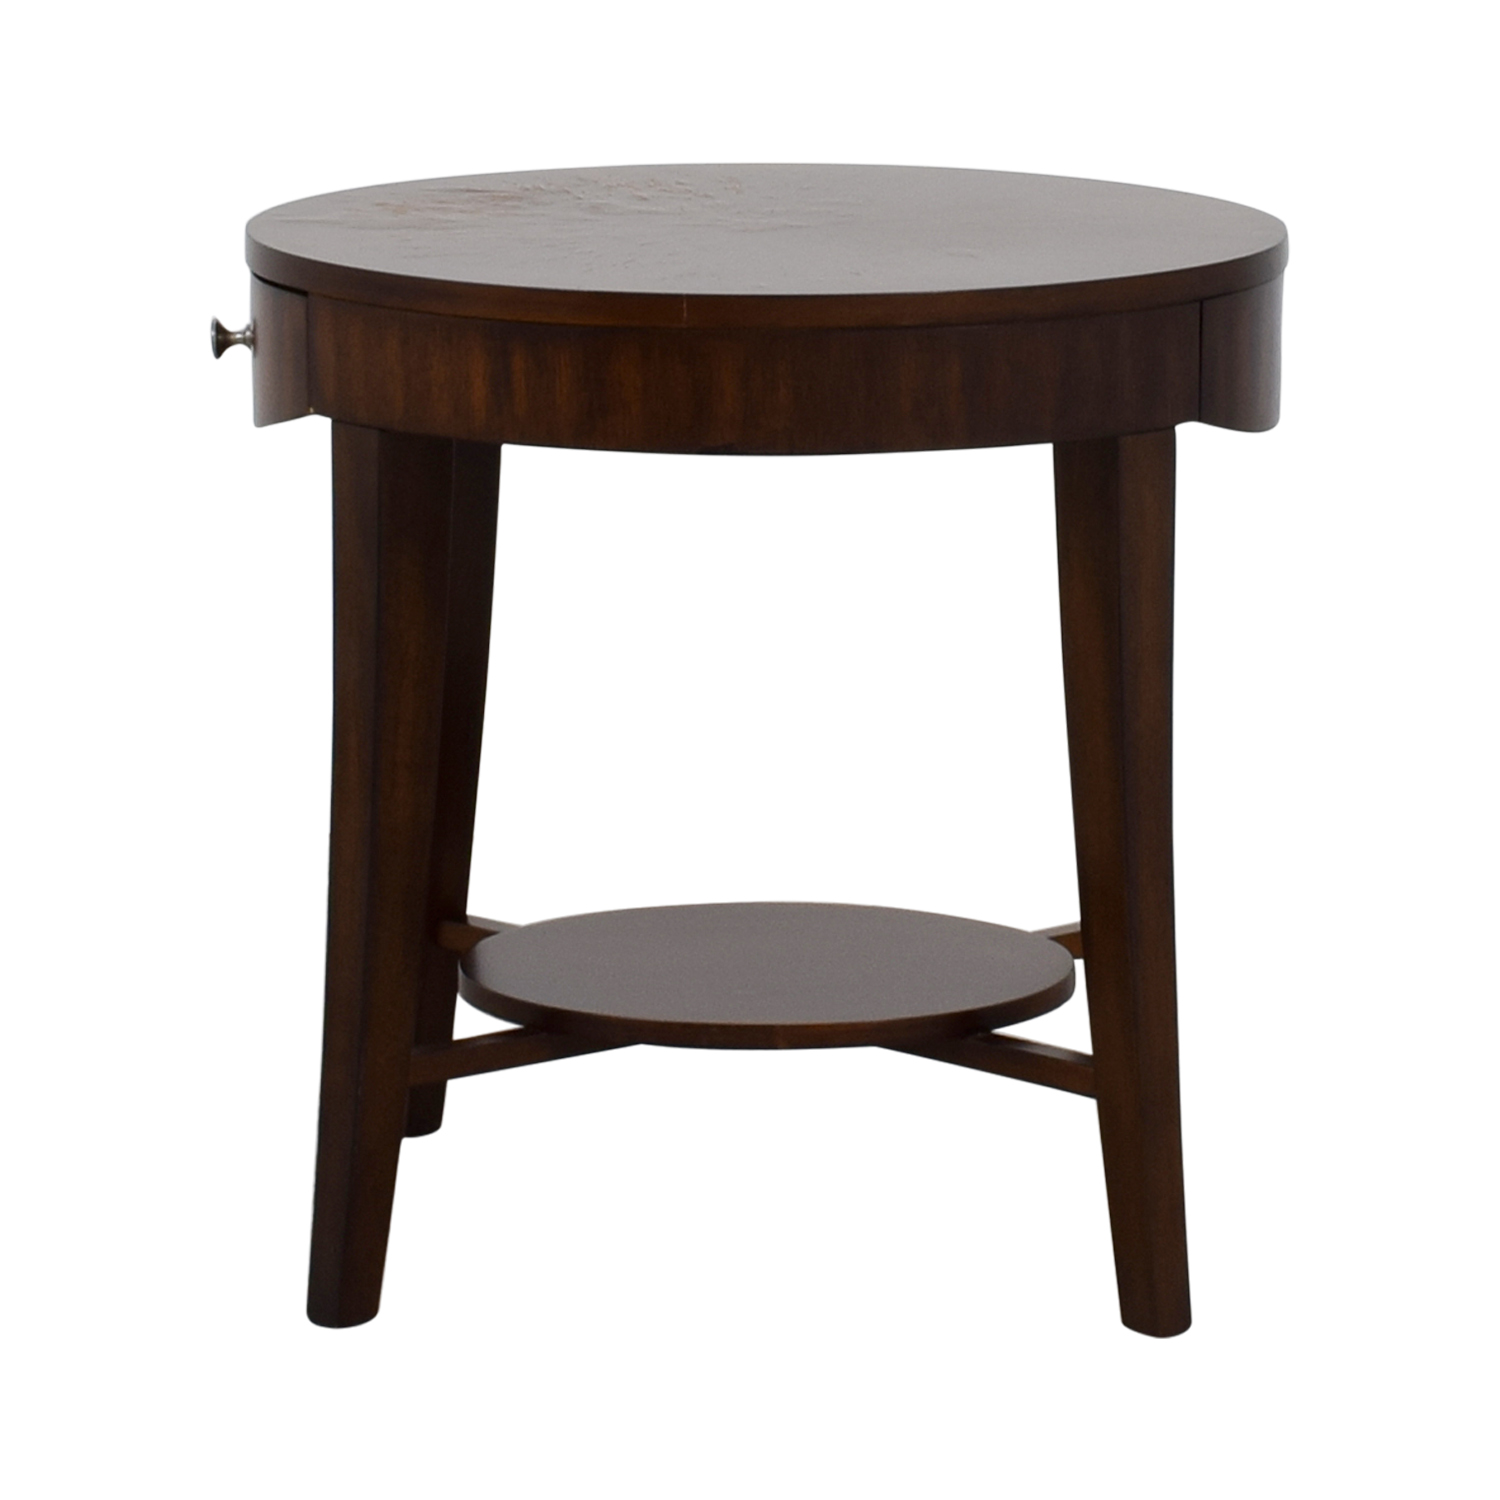 Raymour and Flannigan Raymour and Flanigan Round Side Table second hand